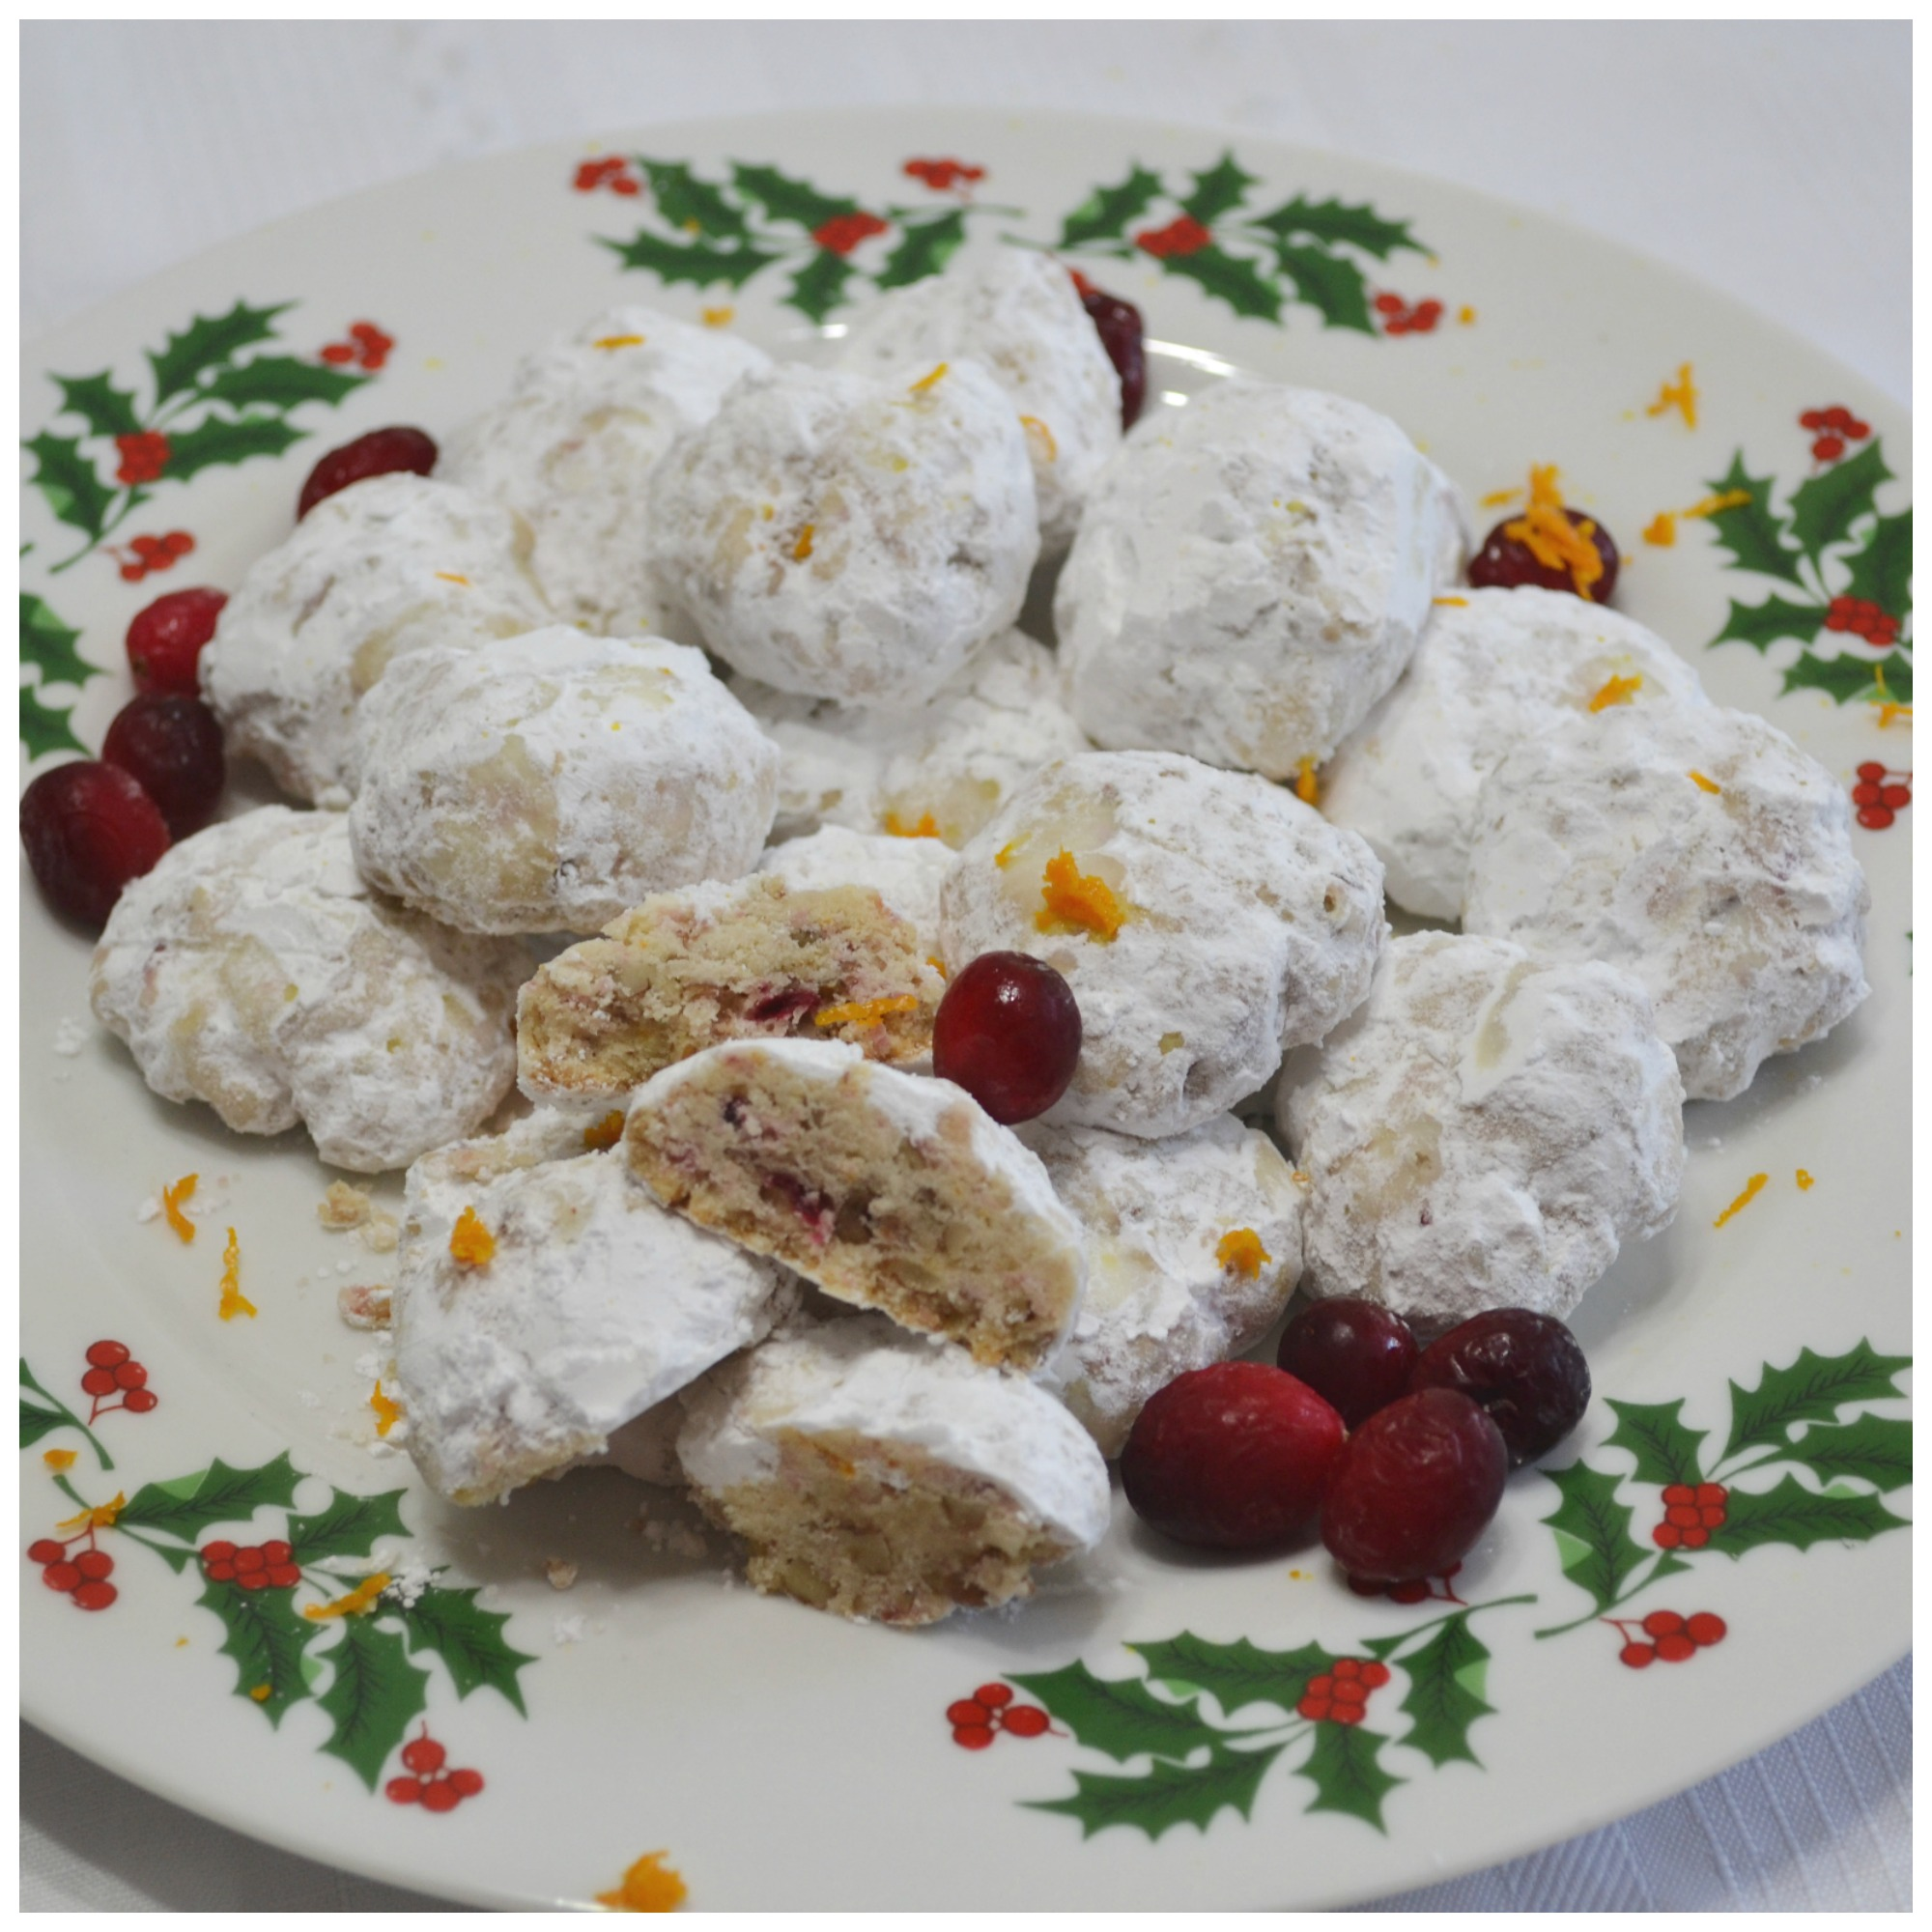 A delicious holiday cookie starting with a snowball recipe and upgraded with frozen cranberries and orange zest.